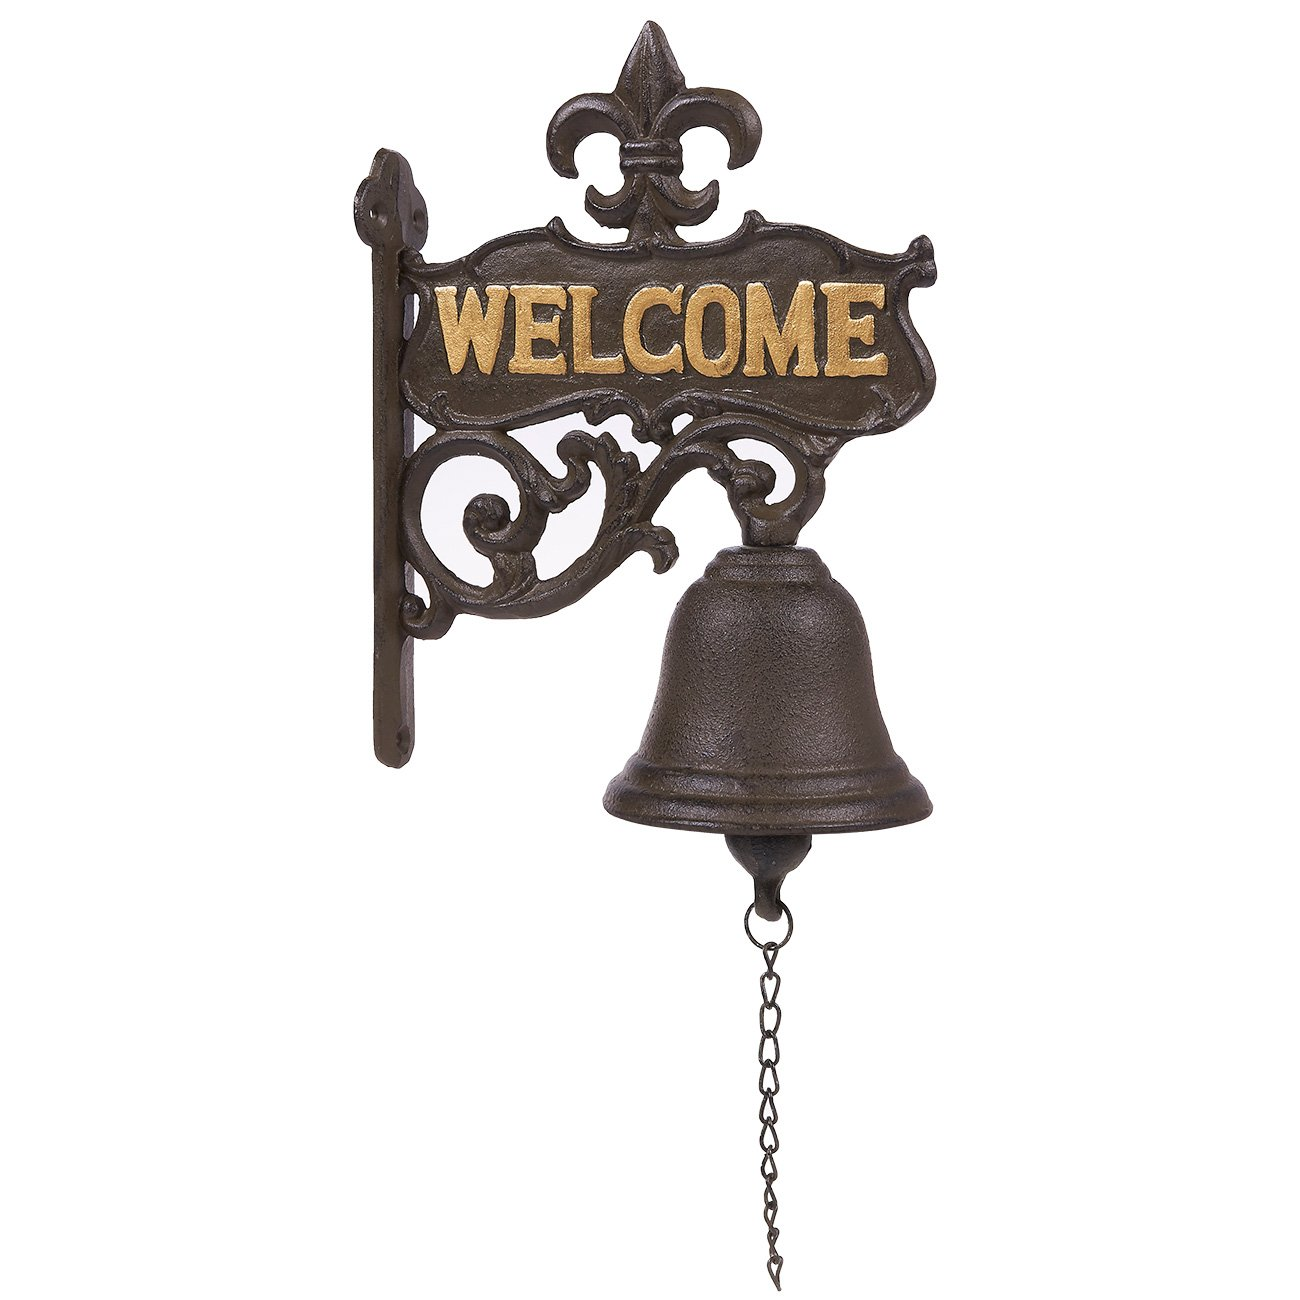 Cast Iron Bell for Front Door, Vintage Antique Style (6.7 x 8.9 x 0.8 Inches)